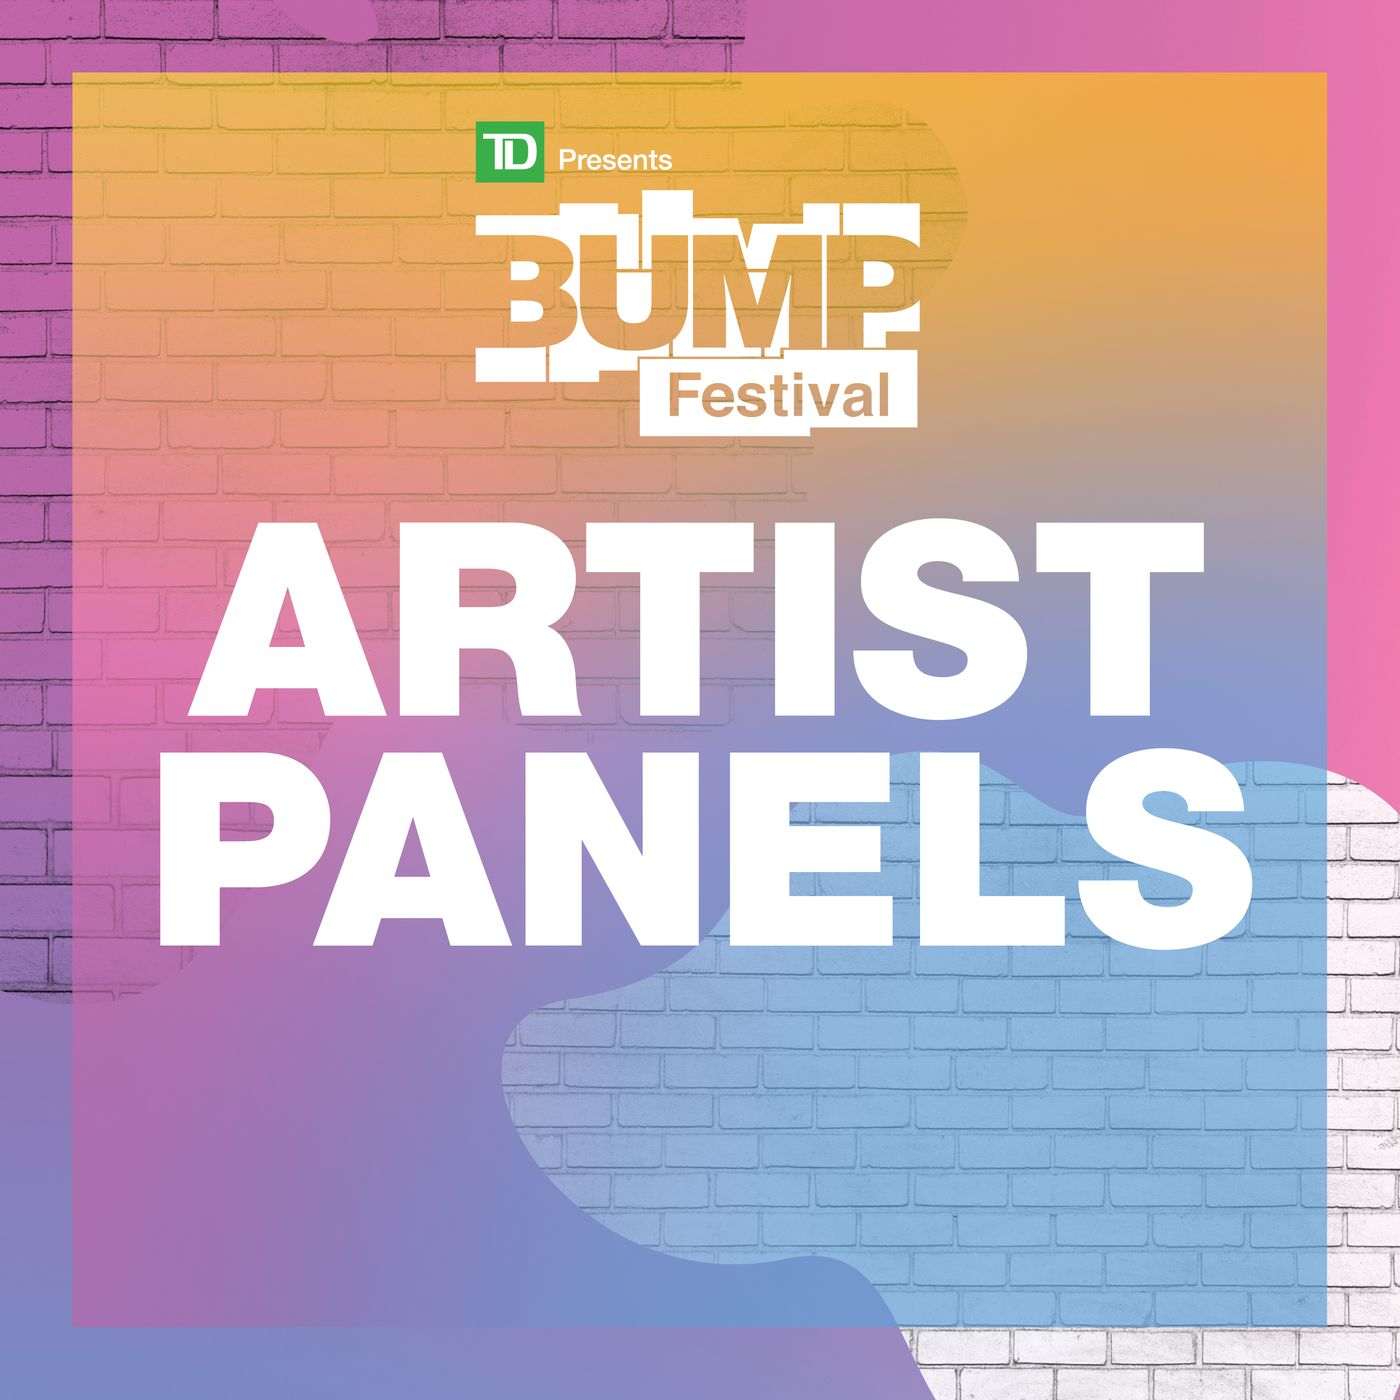 Artist Panel featuring Alex Kwong, Ankh One, Elena Bushan and Mono Sourcil